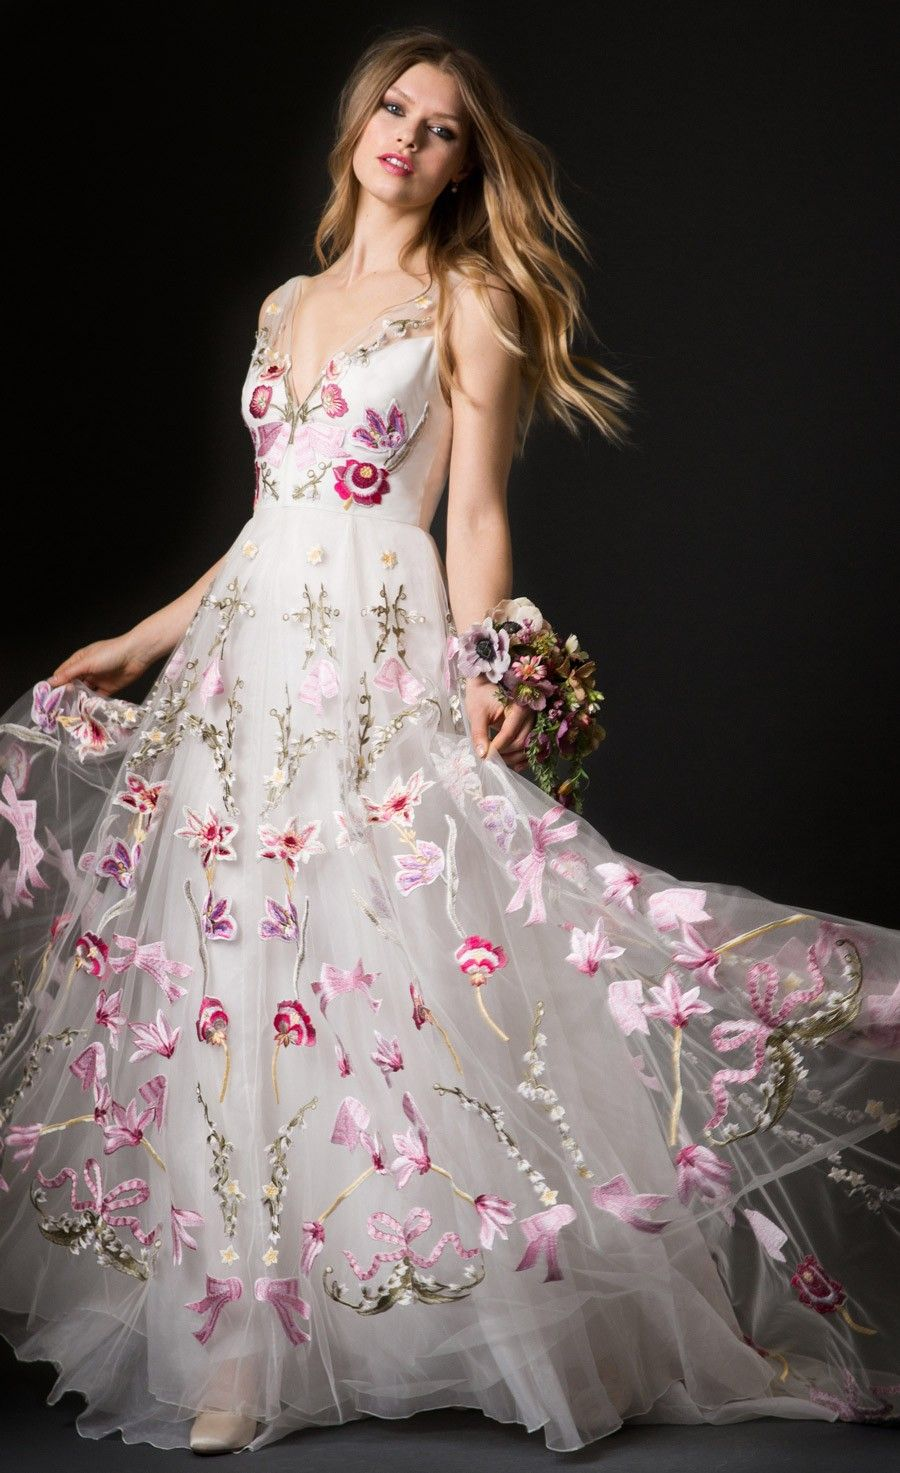 Alice temperley wedding dresses  Pin by Jeannie on Dresses  Pinterest  Feminine and Fashion